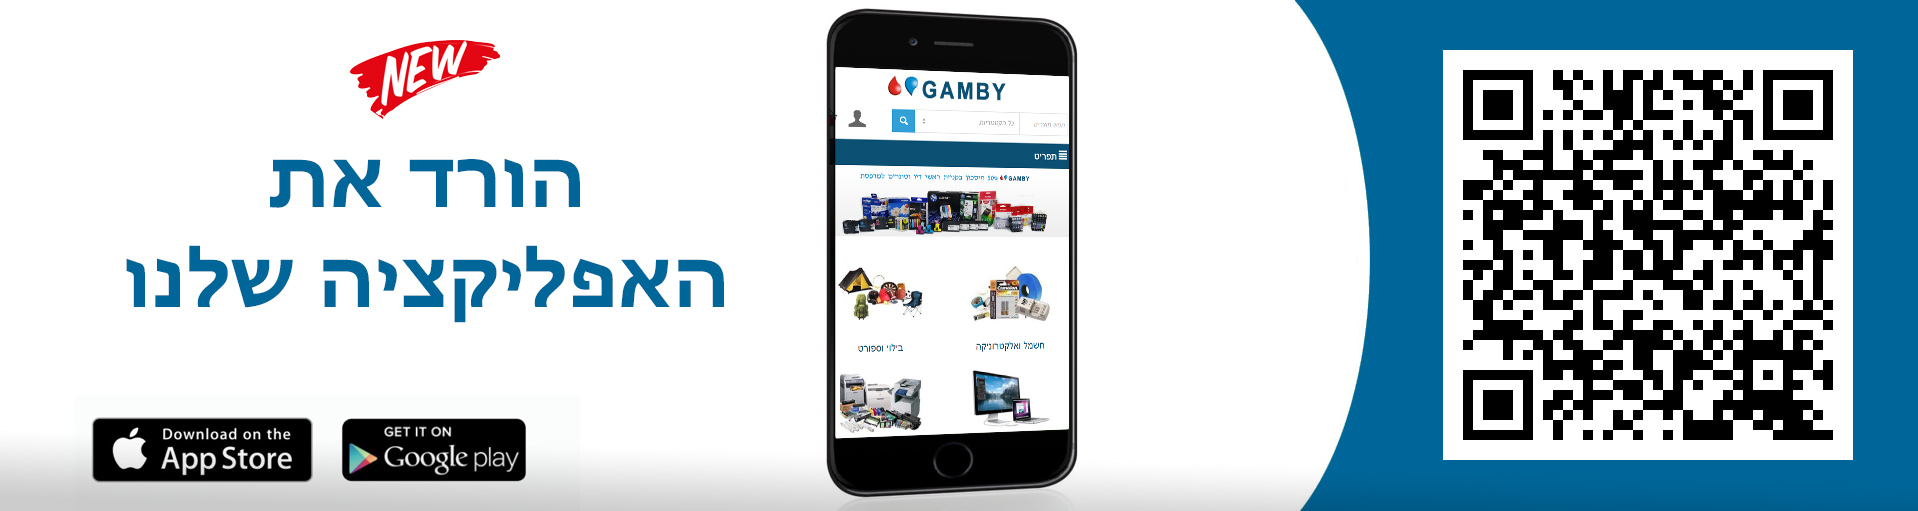 Download gamby application